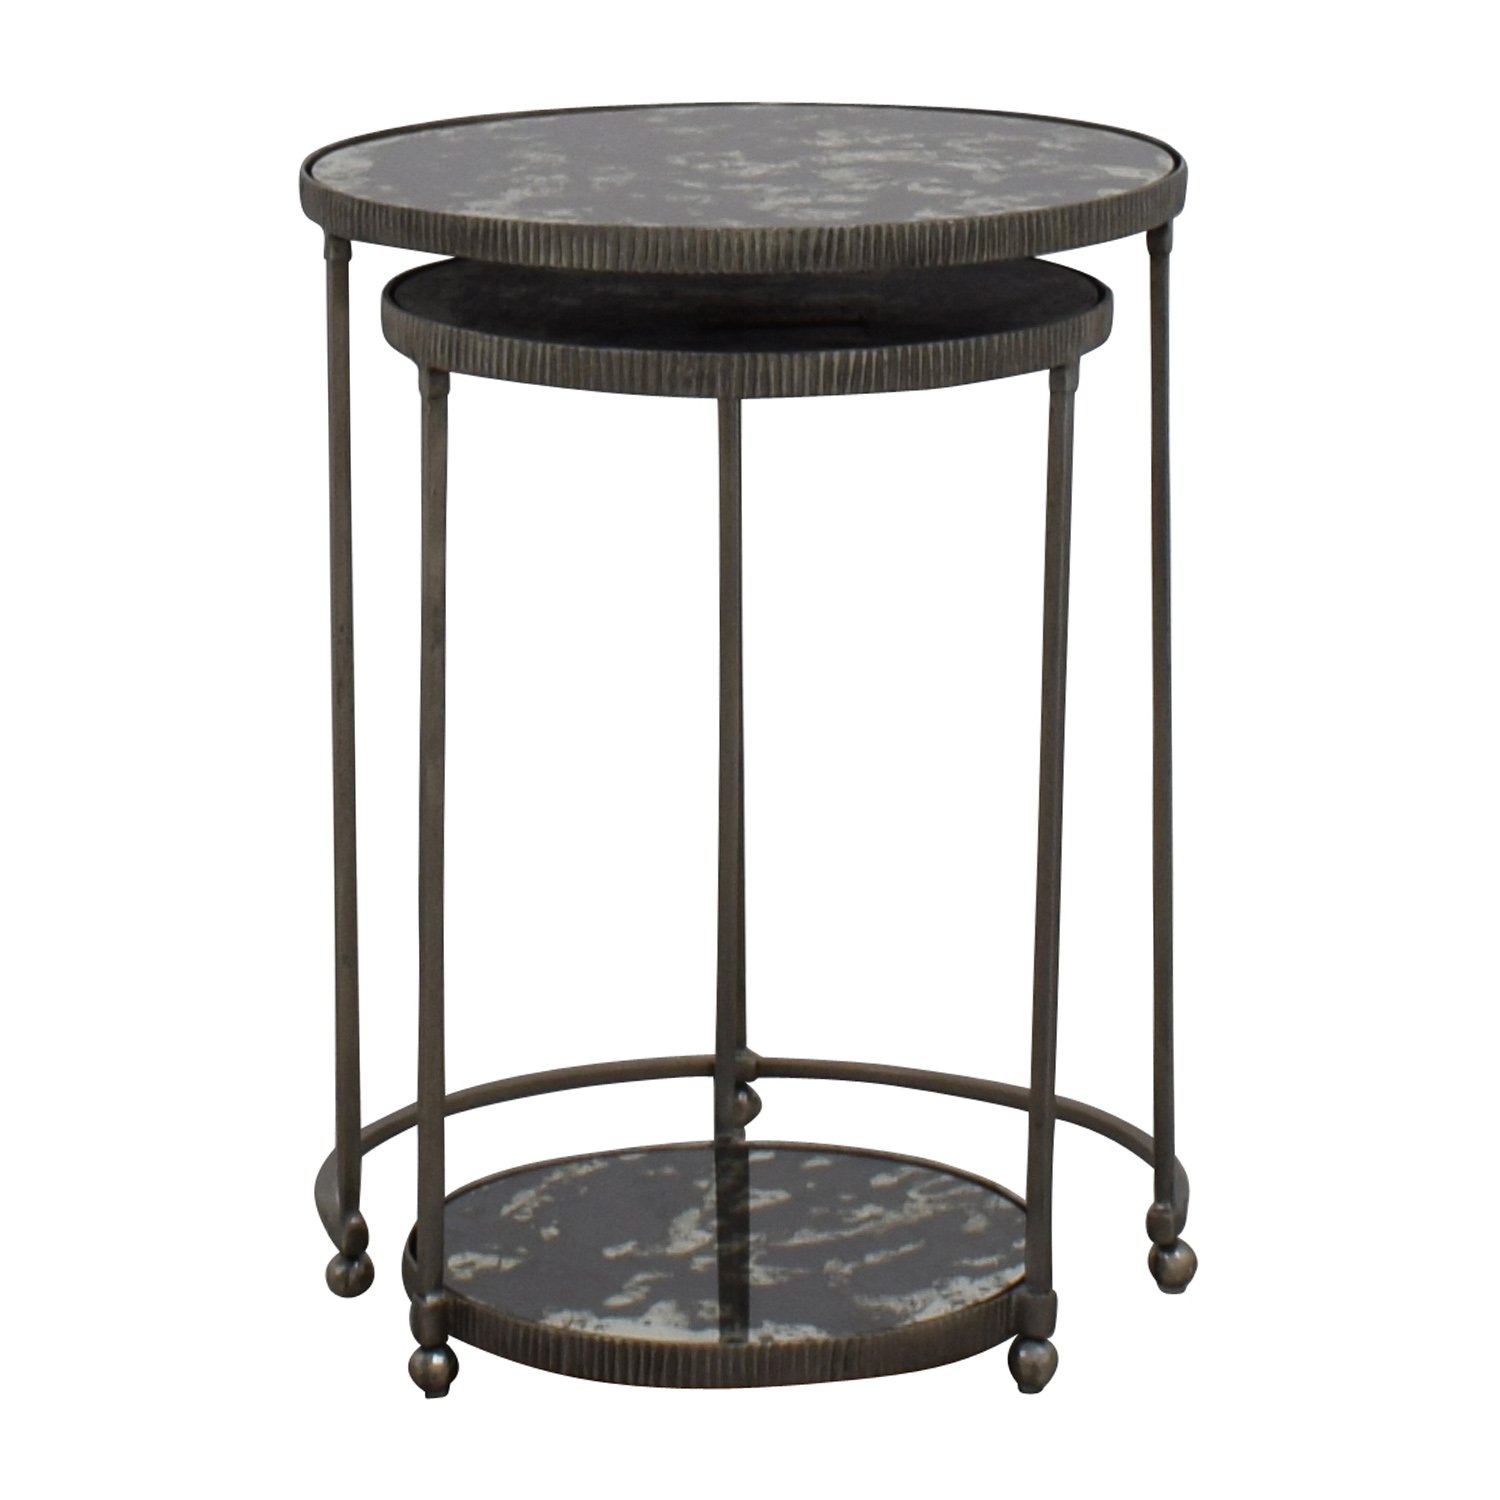 OFF Ethan Allen Ethan Allen Glass Nesting Tables Tables